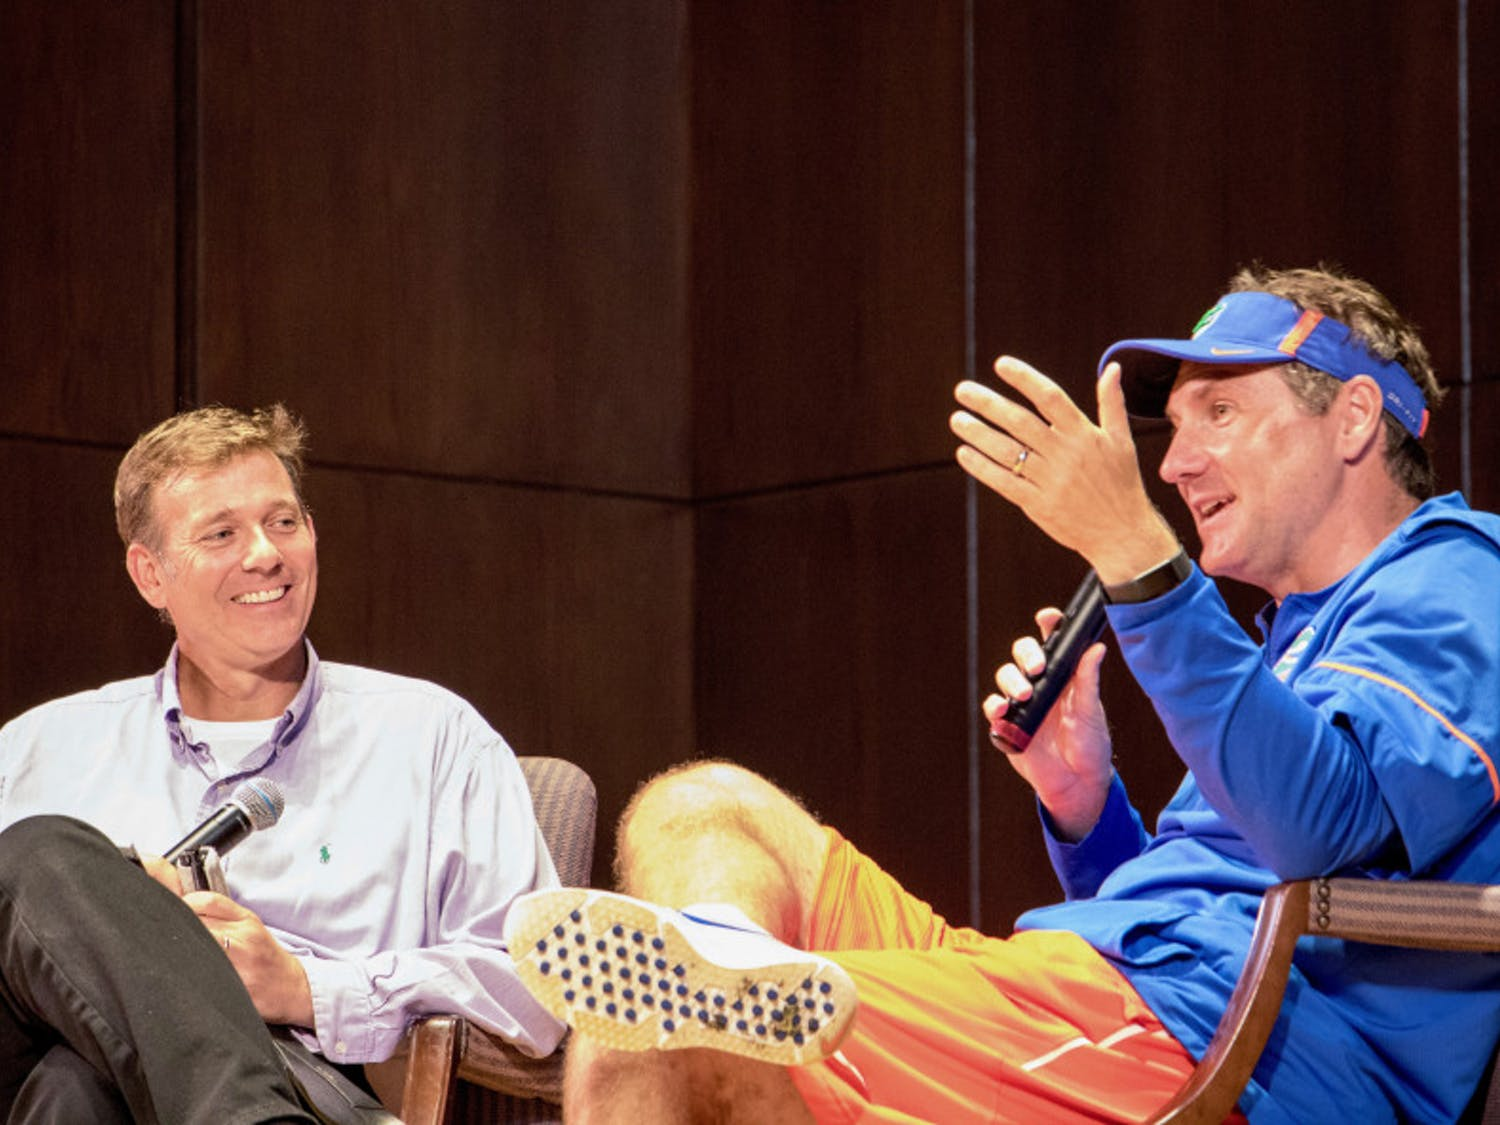 UF football head coach Dan Mullen answers questions and talks about his coaching career, the football program, and more with moderator Ted Spiker at the Accent Speakers Bureau event Tuesday night. About 200 people attended the free event at the University Auditorium.